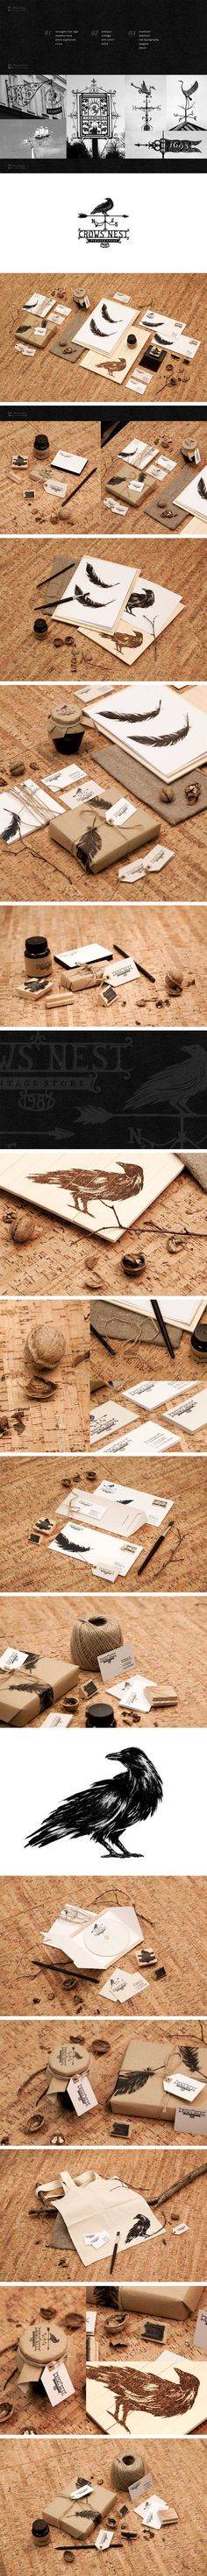 Crow's Nest #packaging #branding marketing PD